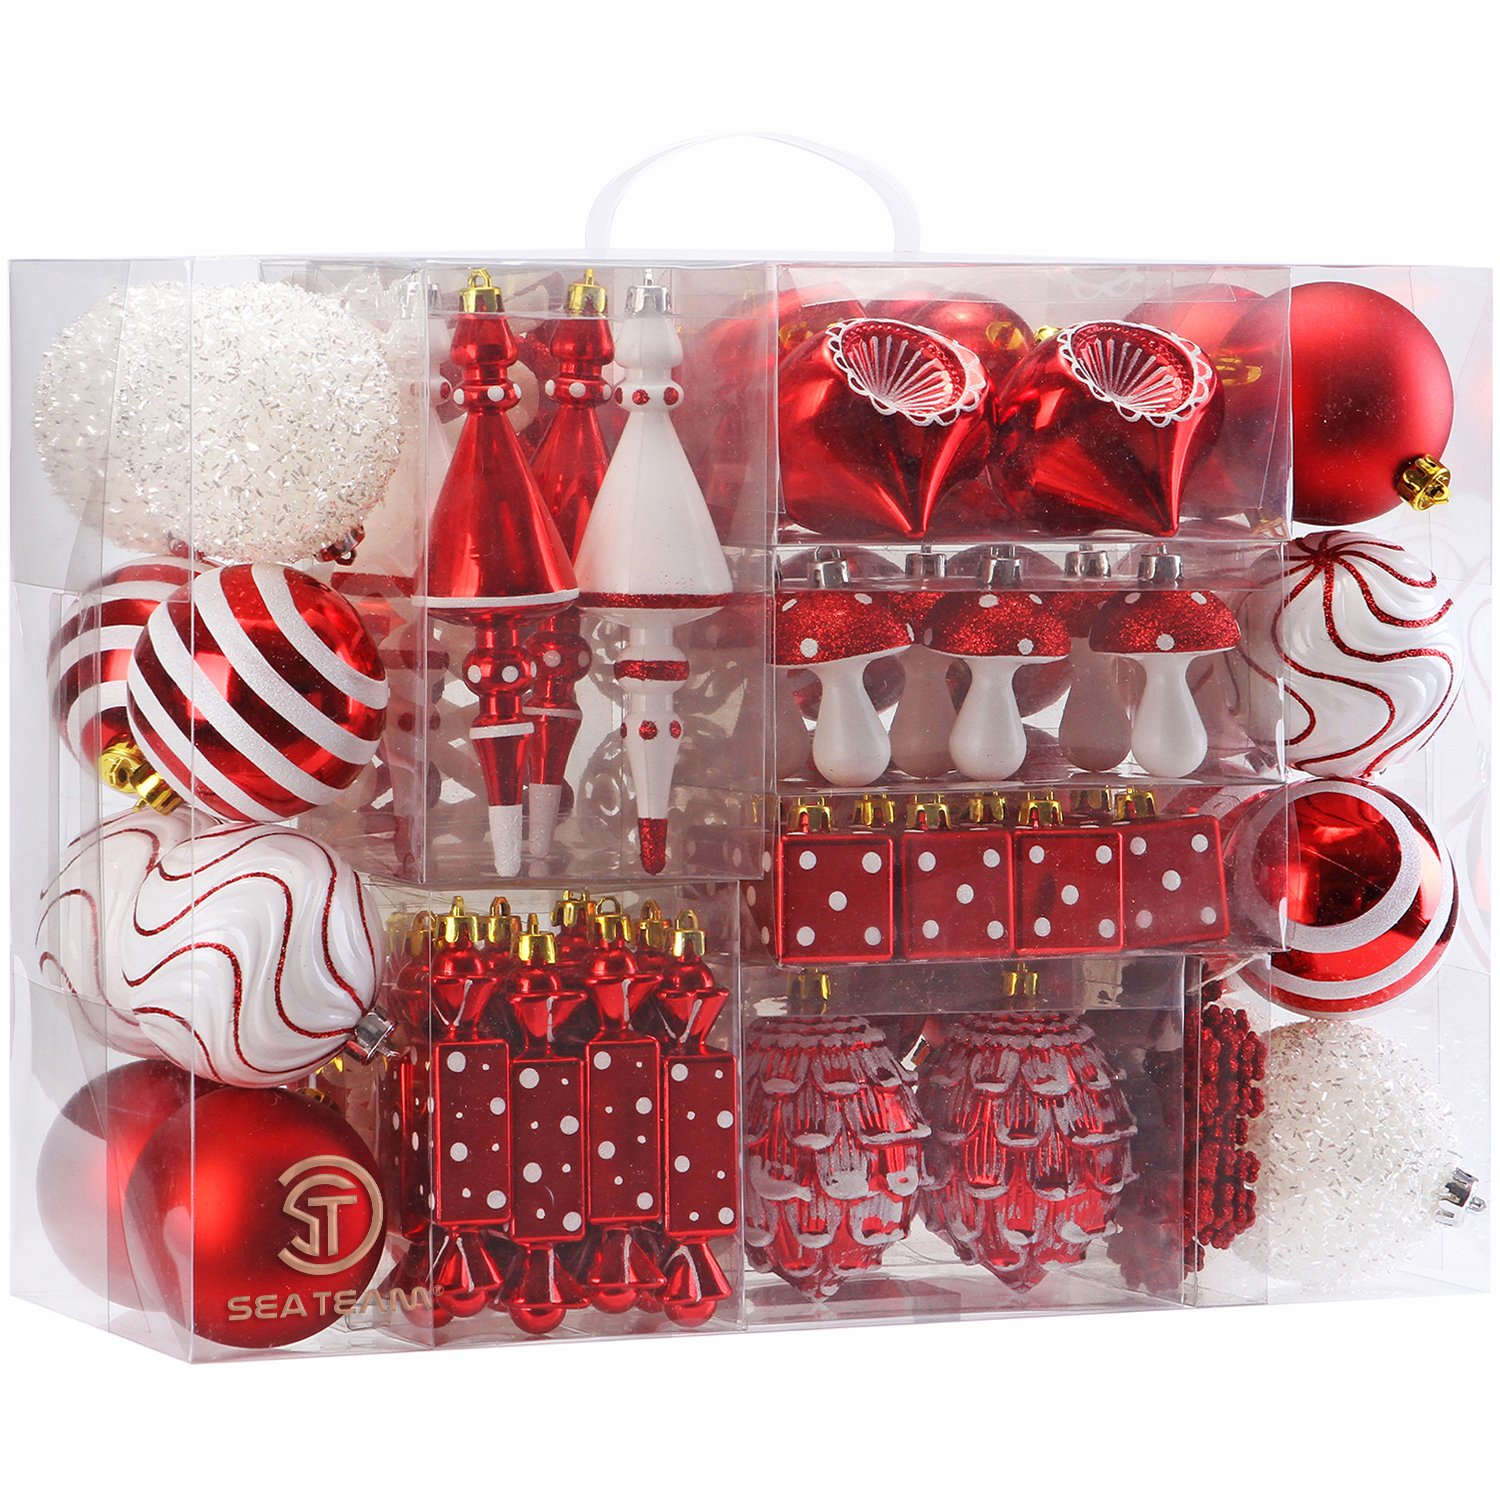 Sea Team 84 Pieces of Assorted Shatterproof Christmas Ball Ornaments Set Seasonal Decorative Hanging Ornament Set with Reusable Hand-held Gift Package for Holiday Xmas Tree Decorations Red /& White ST82SA-RW